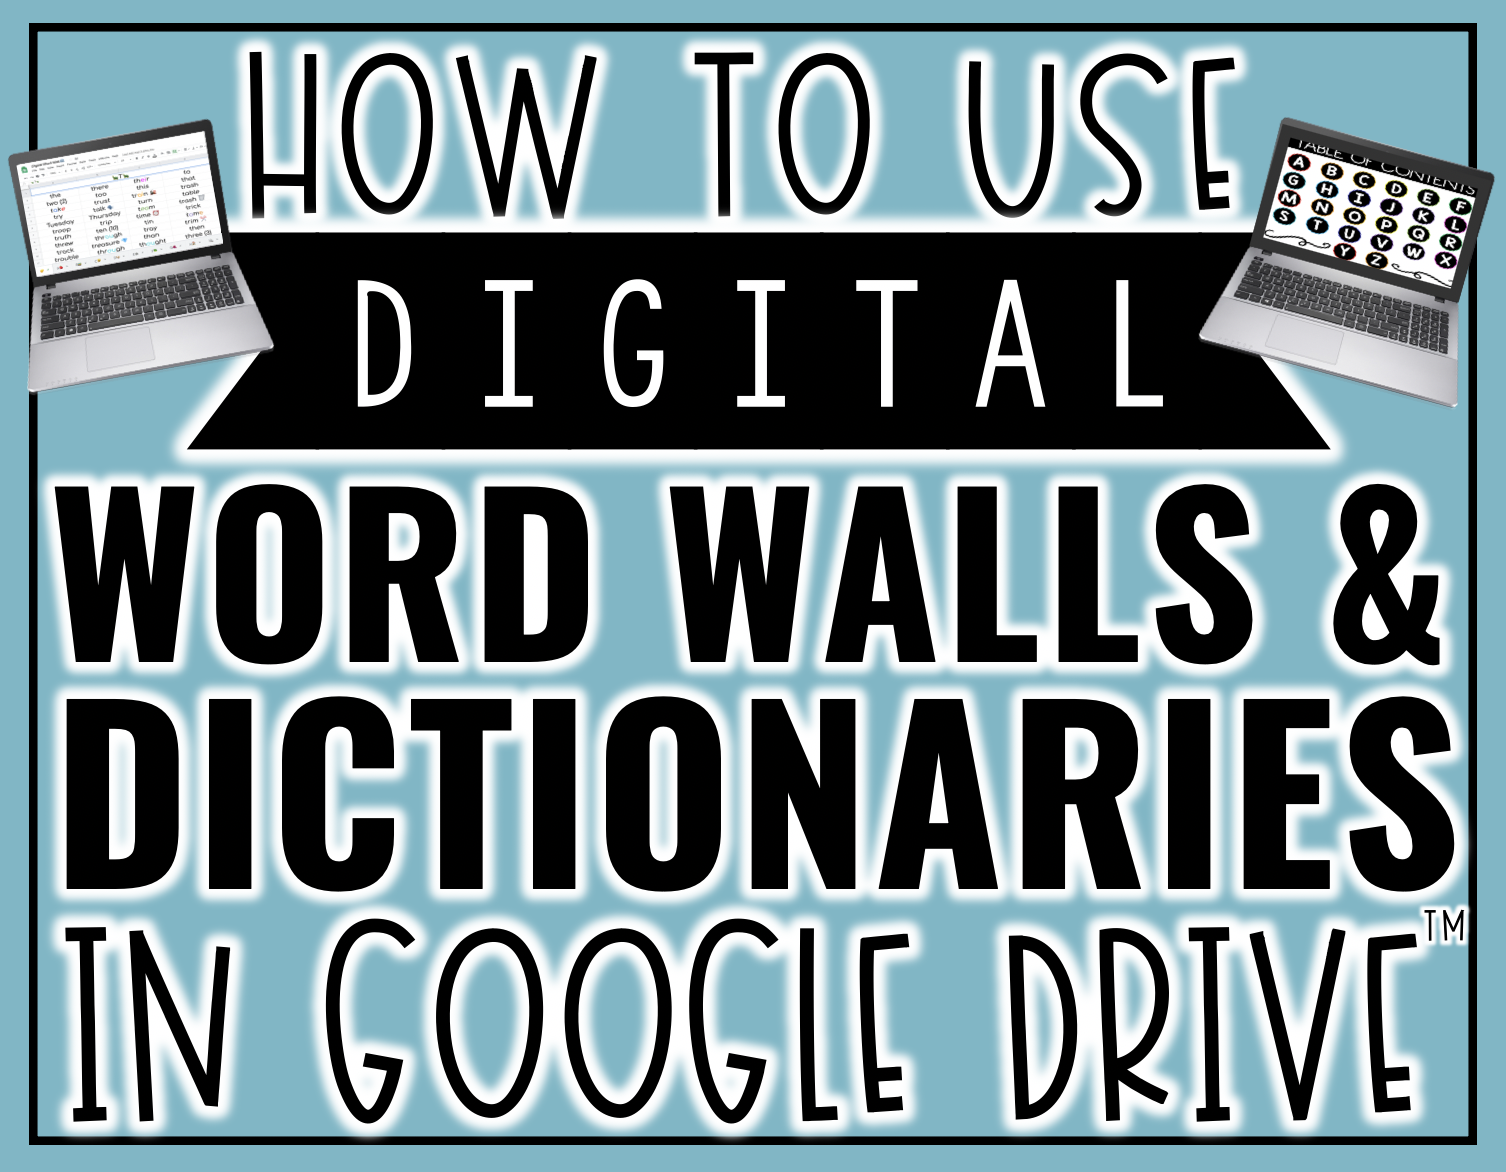 How to Use Digital Word Walls and Dictionaries in Google Drive™